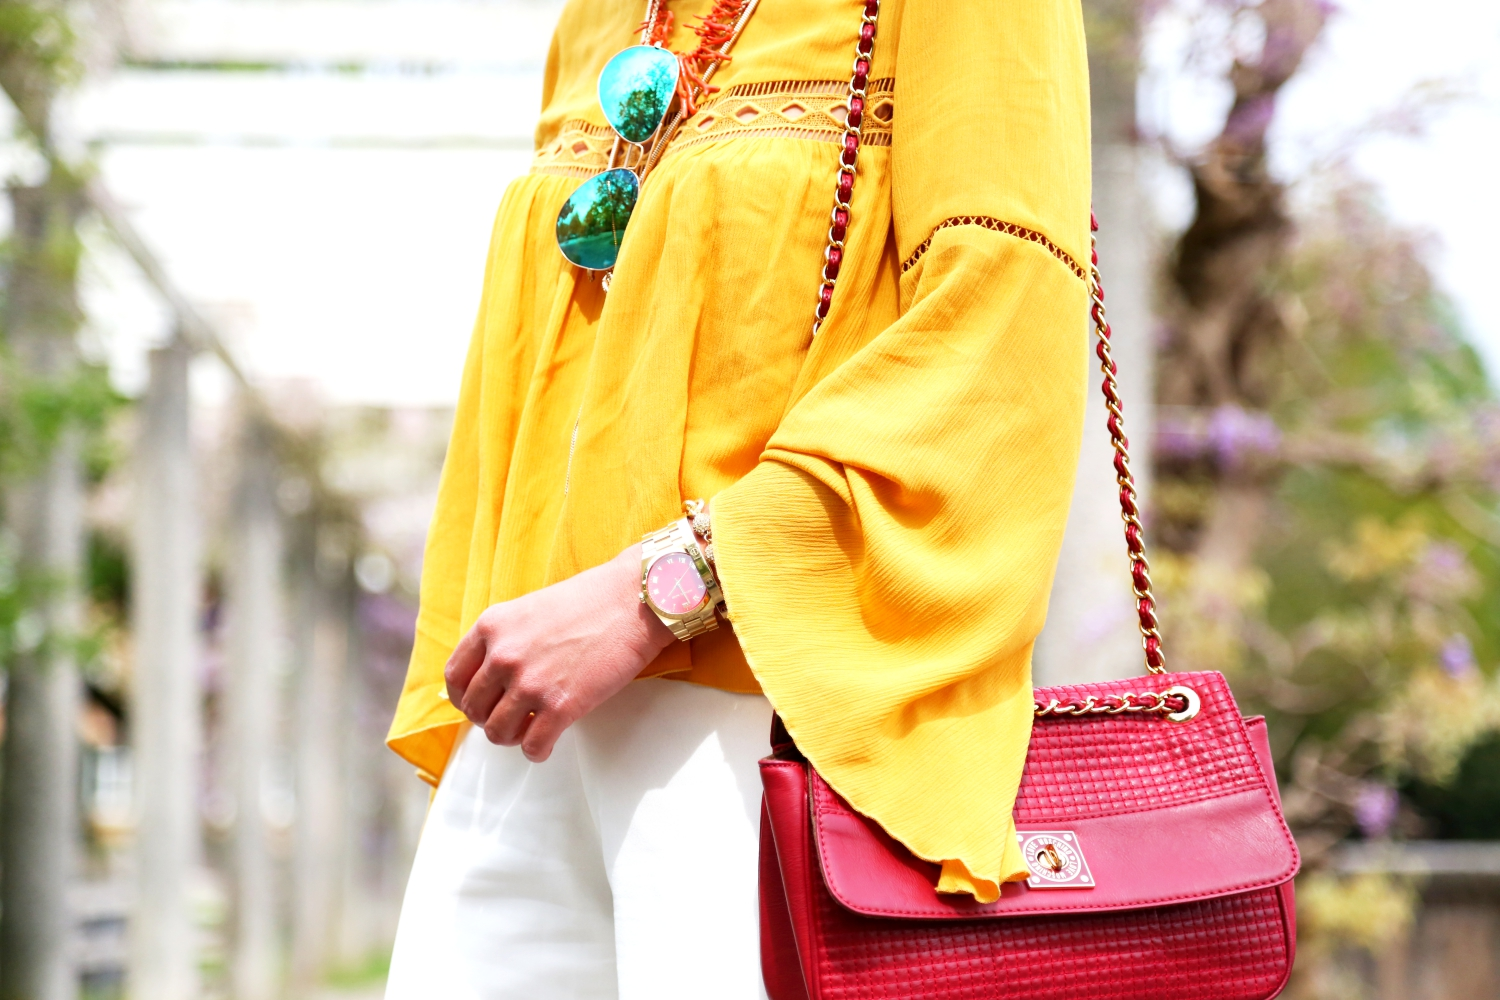 outfit-details-love-moschino-bag-yellow-blouse-michaelkors-watch